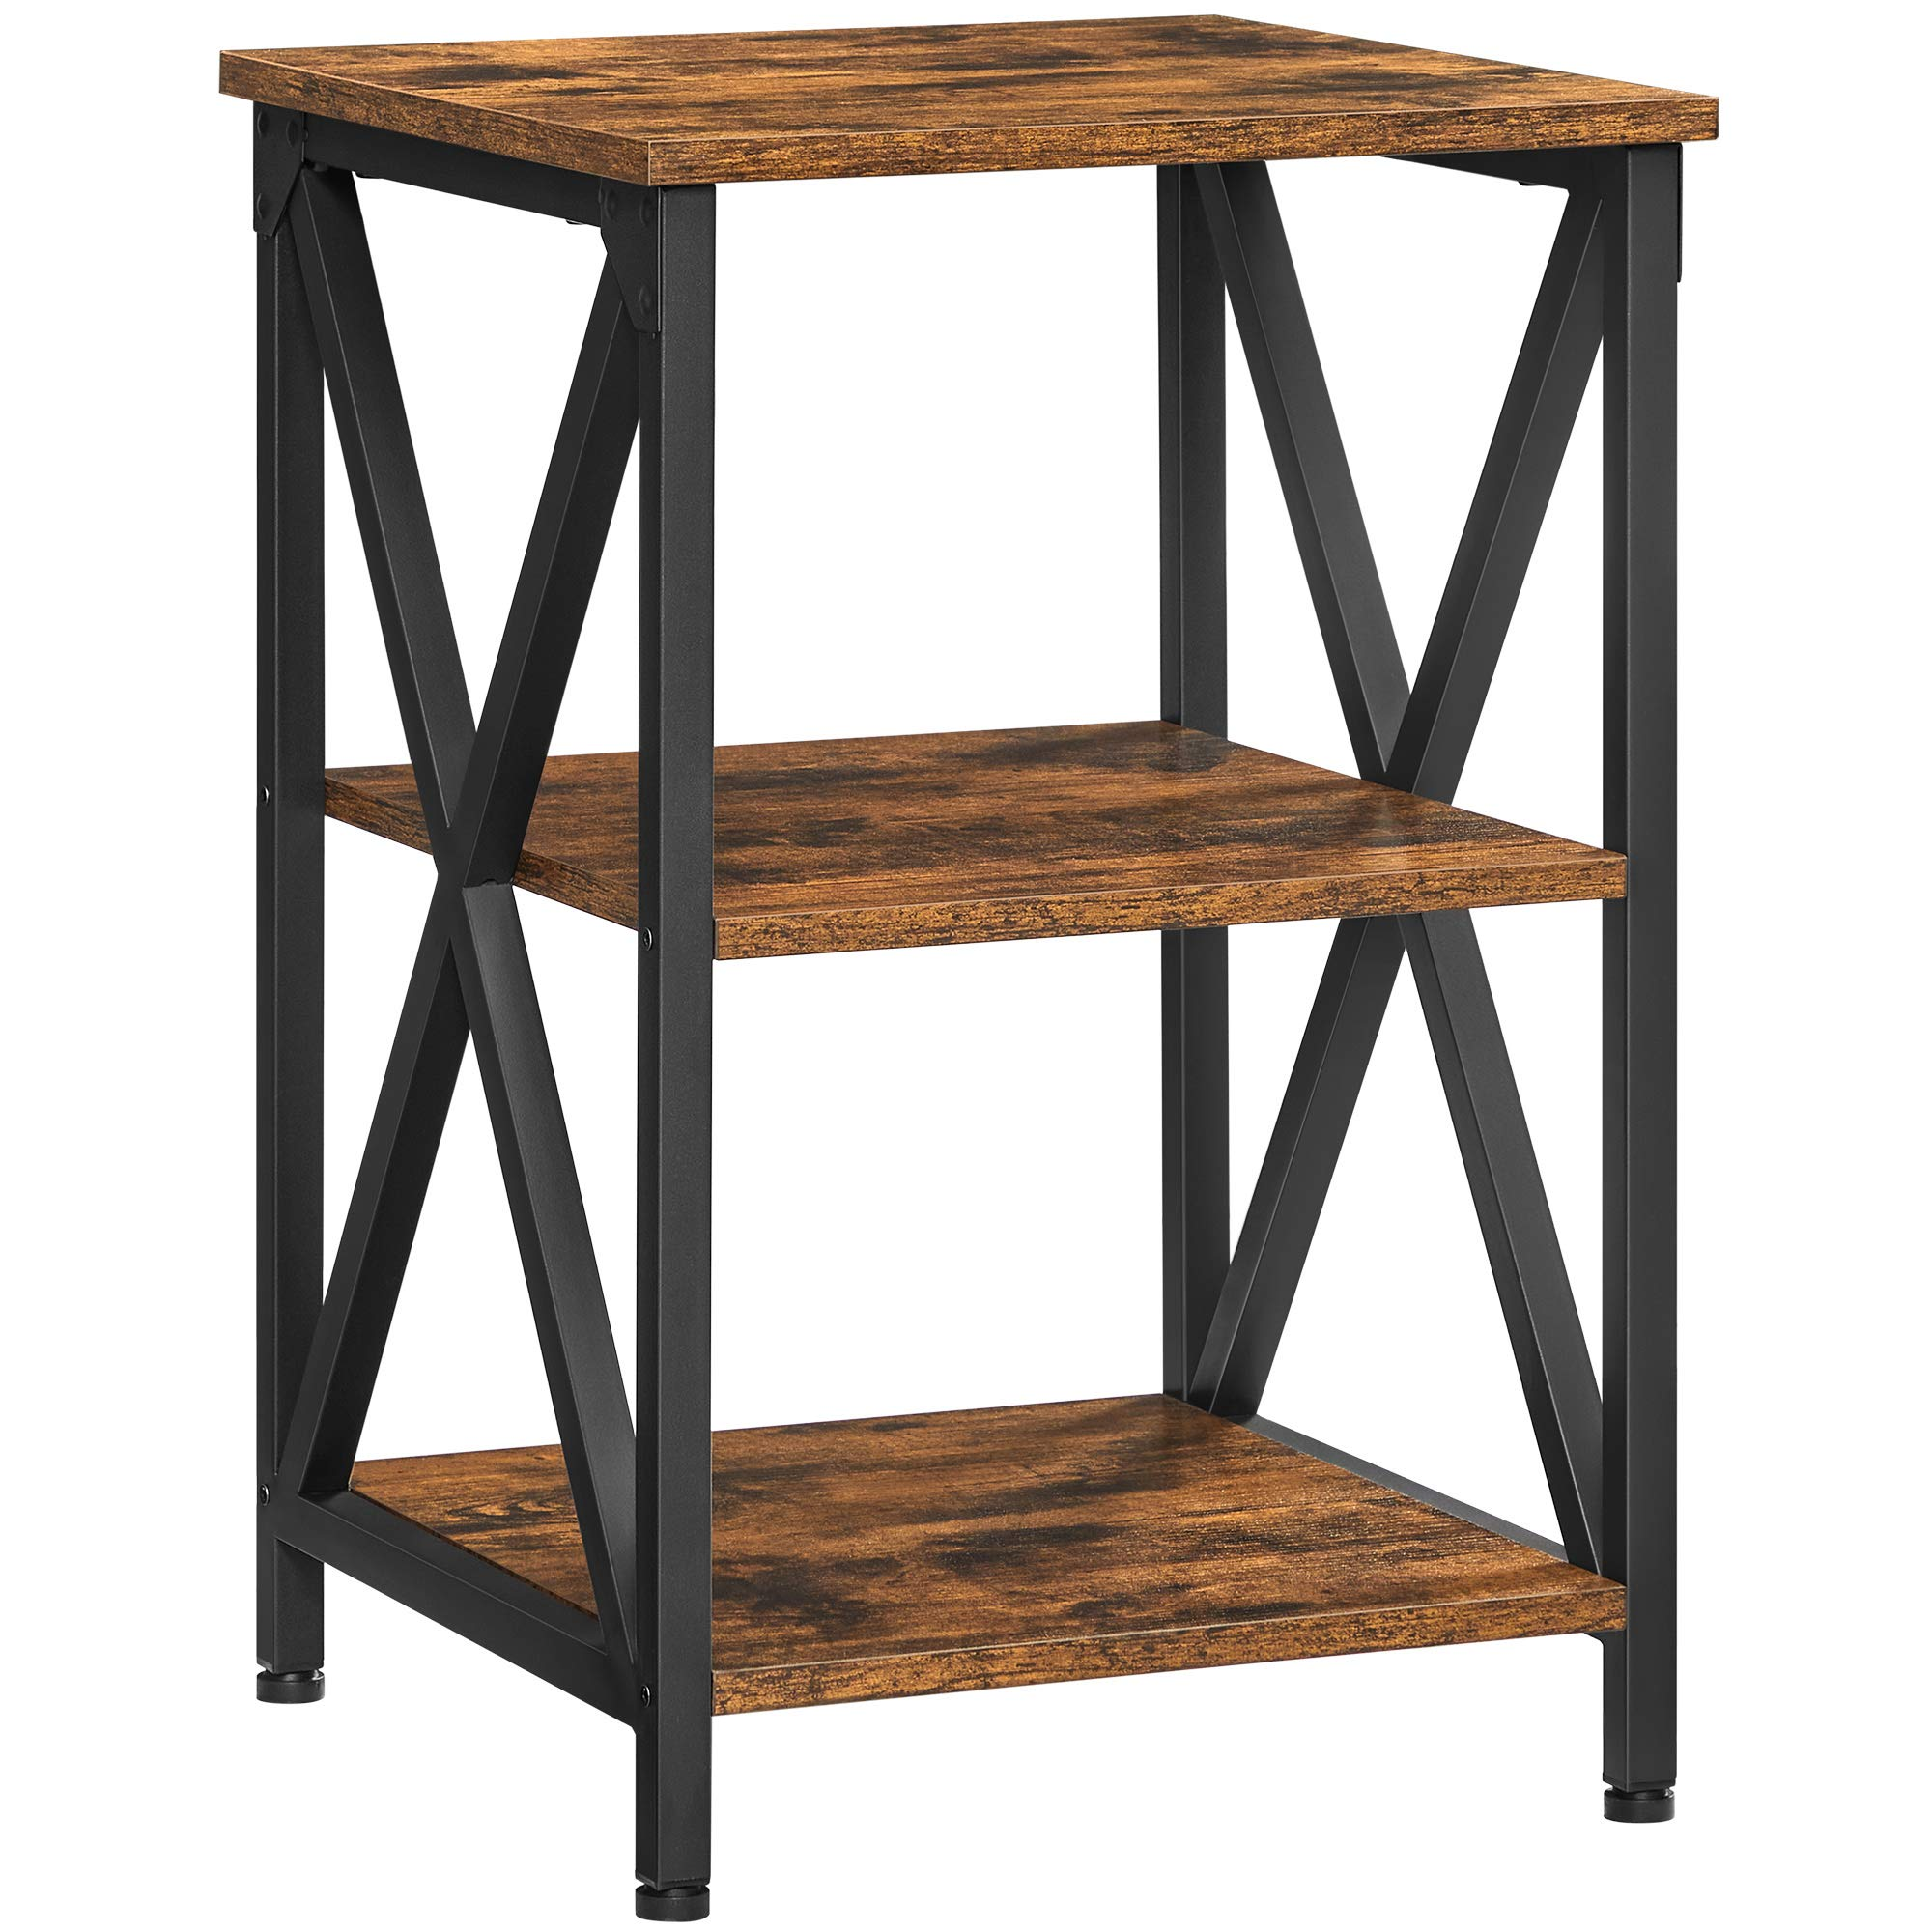 VASAGLE Side Table Farmhouse, End Table X-Shaped Design, Nightstand with Steel Frame and 2 Storage Shelves, Farmhouse Industrial Style, Rustic Brown and Black ULET278B01V1